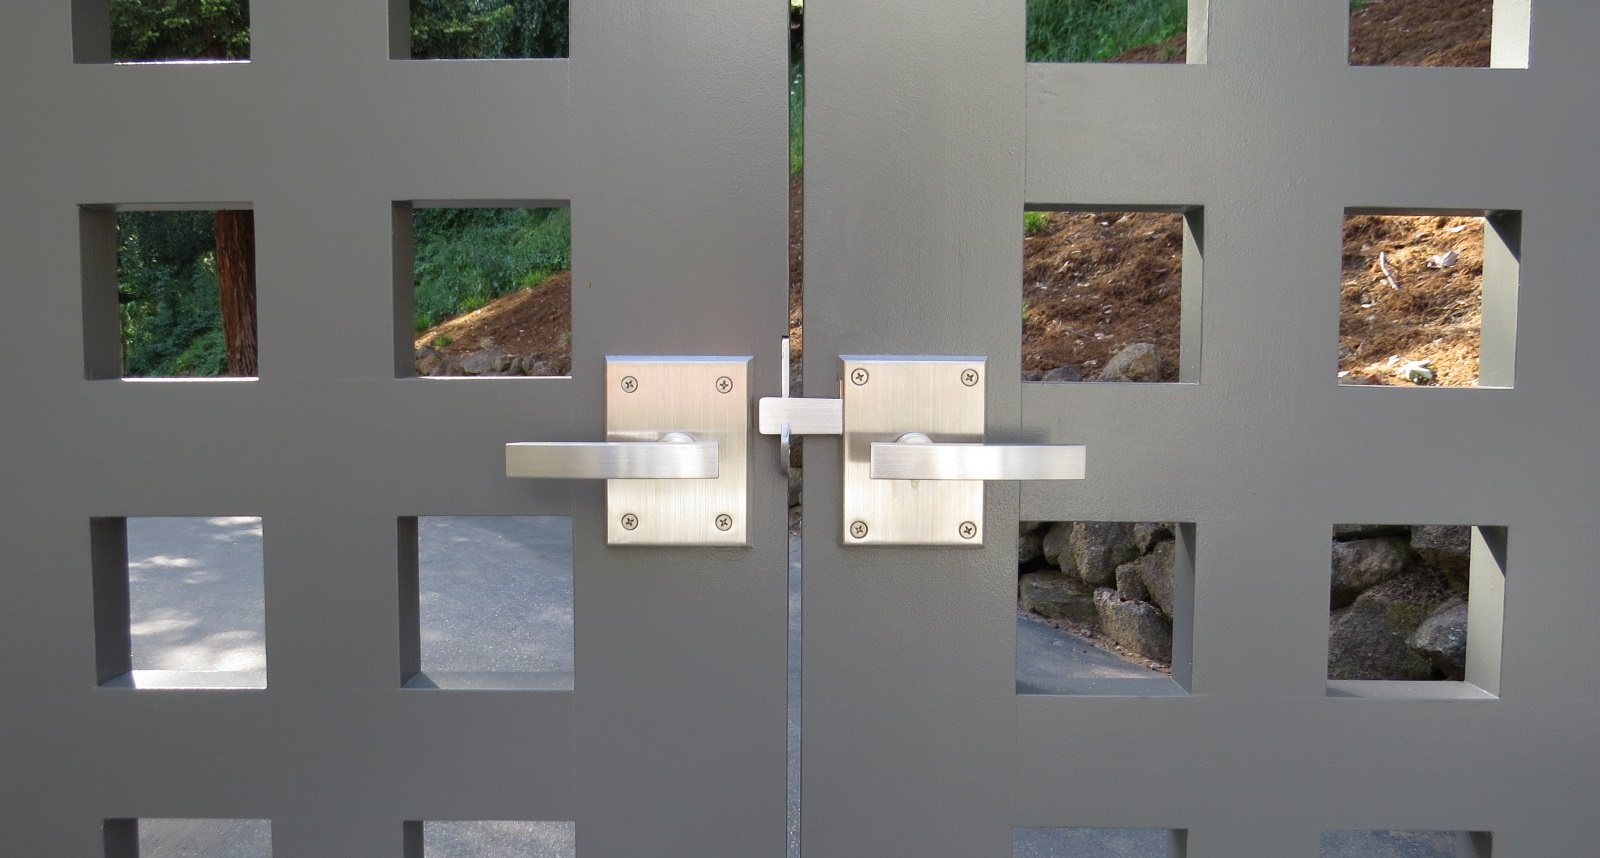 alta-modern-lever-gate-latch-on-double-gate-with-dummy-handle-on-inactive-side.jpg